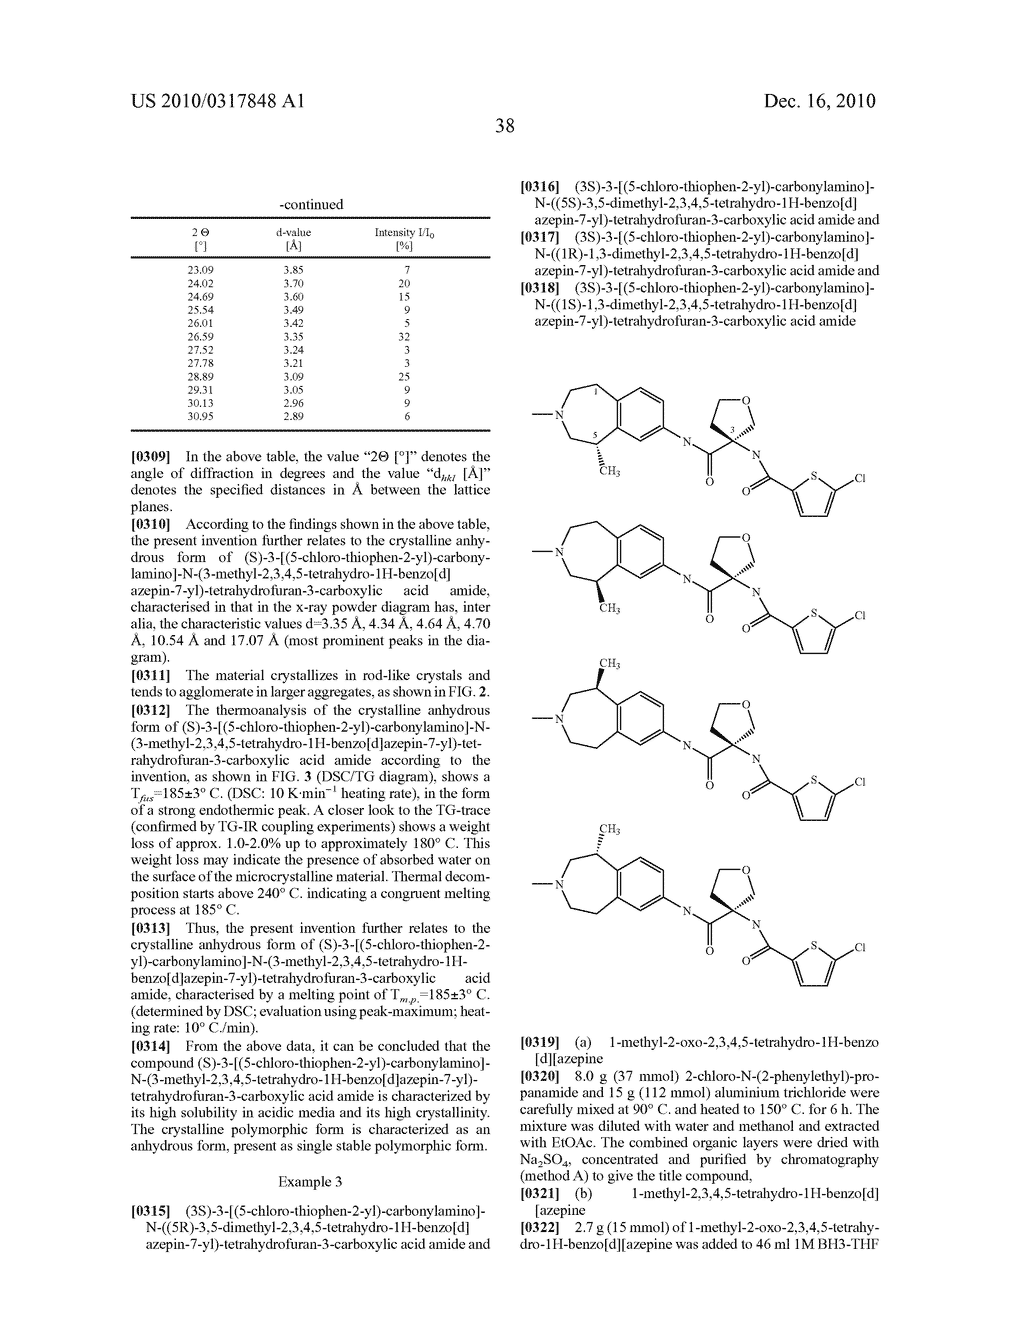 PROCESS FOR THE SYNTHESIS OF DERIVATIVES OF 3-AMINO-TETRAHYDROFURAN-3-CARBOXYLIC ACID AND USE THEREOF AS MEDICAMENTS - diagram, schematic, and image 43